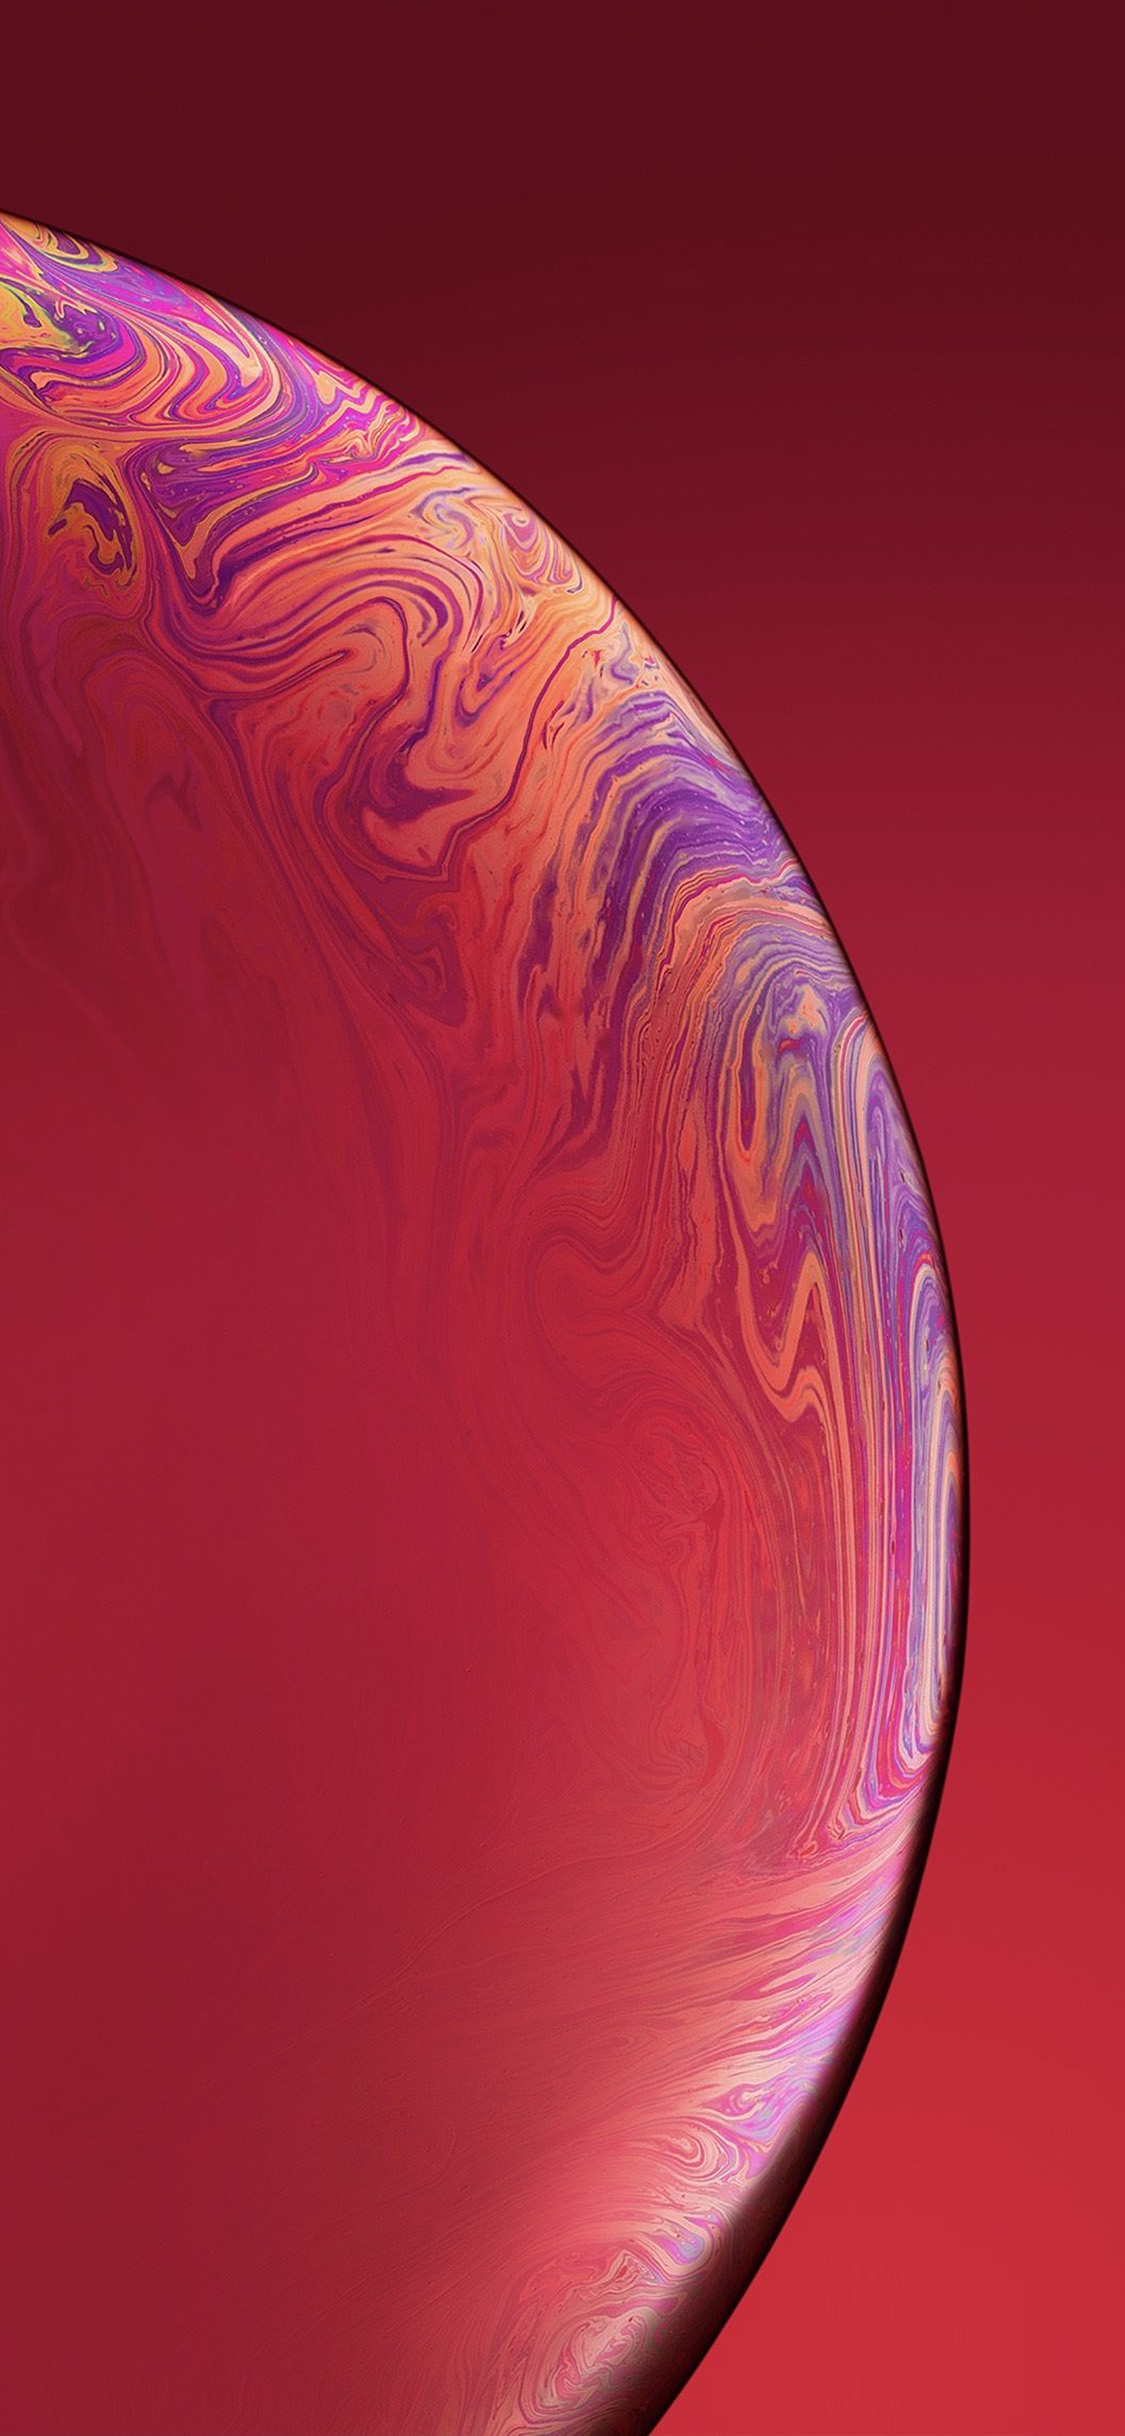 Iphonexpapers Com Iphone X Wallpaper Bg43 Red Apple Iphone Xs